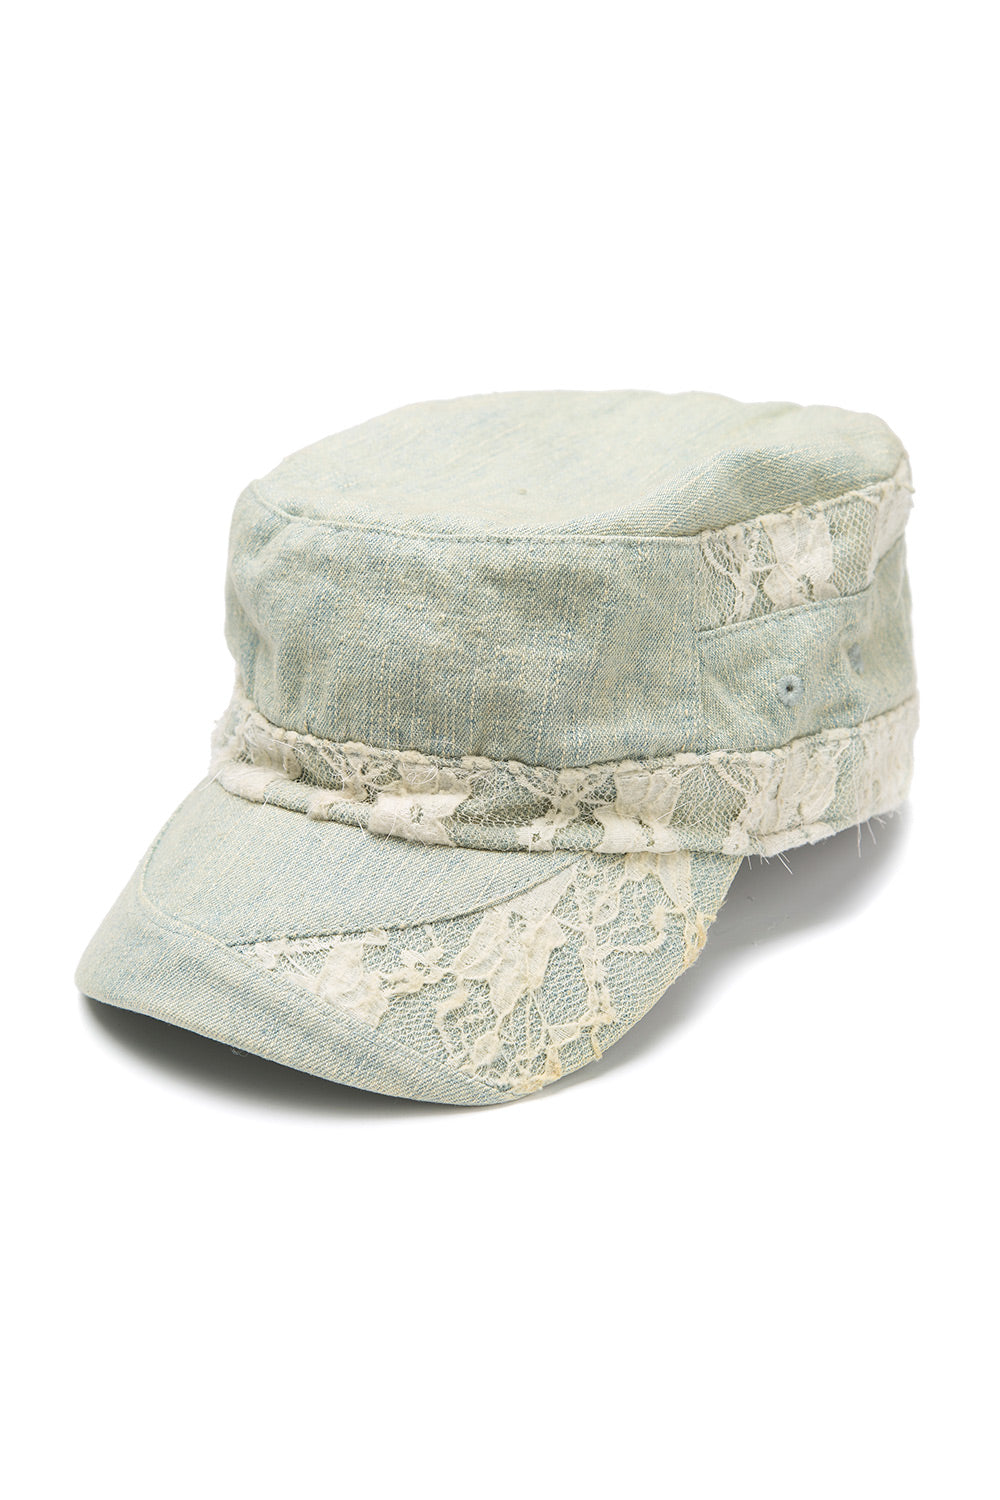 Type 2 Denim and Lace Hat